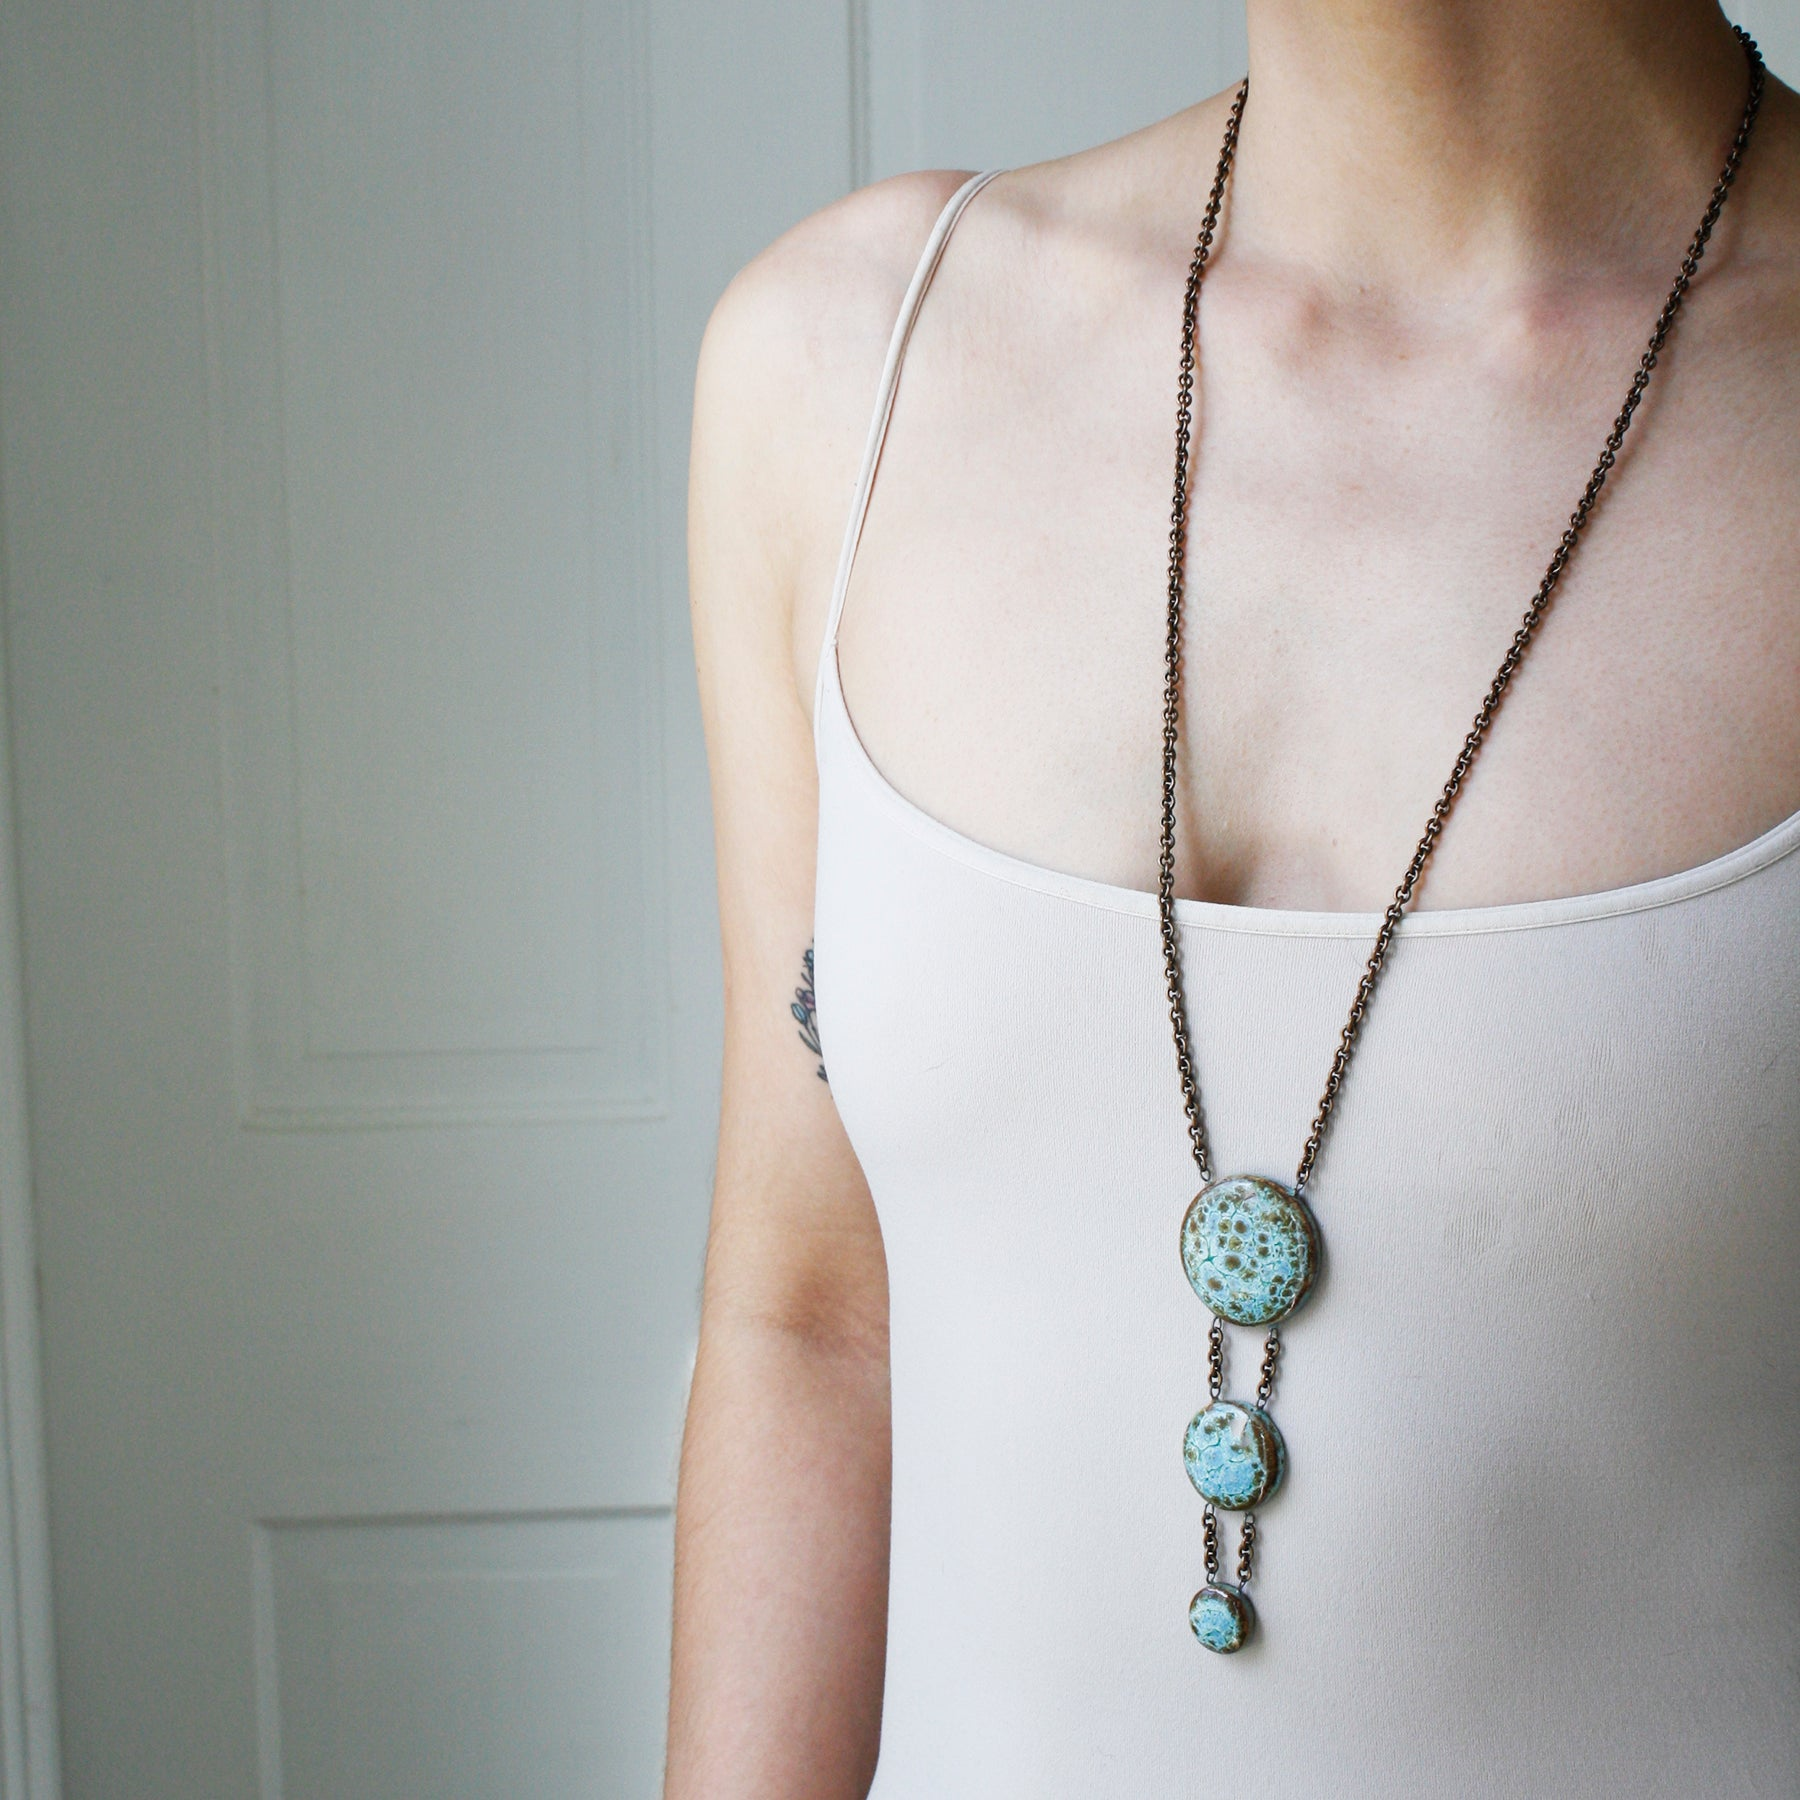 3 Piece Circle Necklace - Long